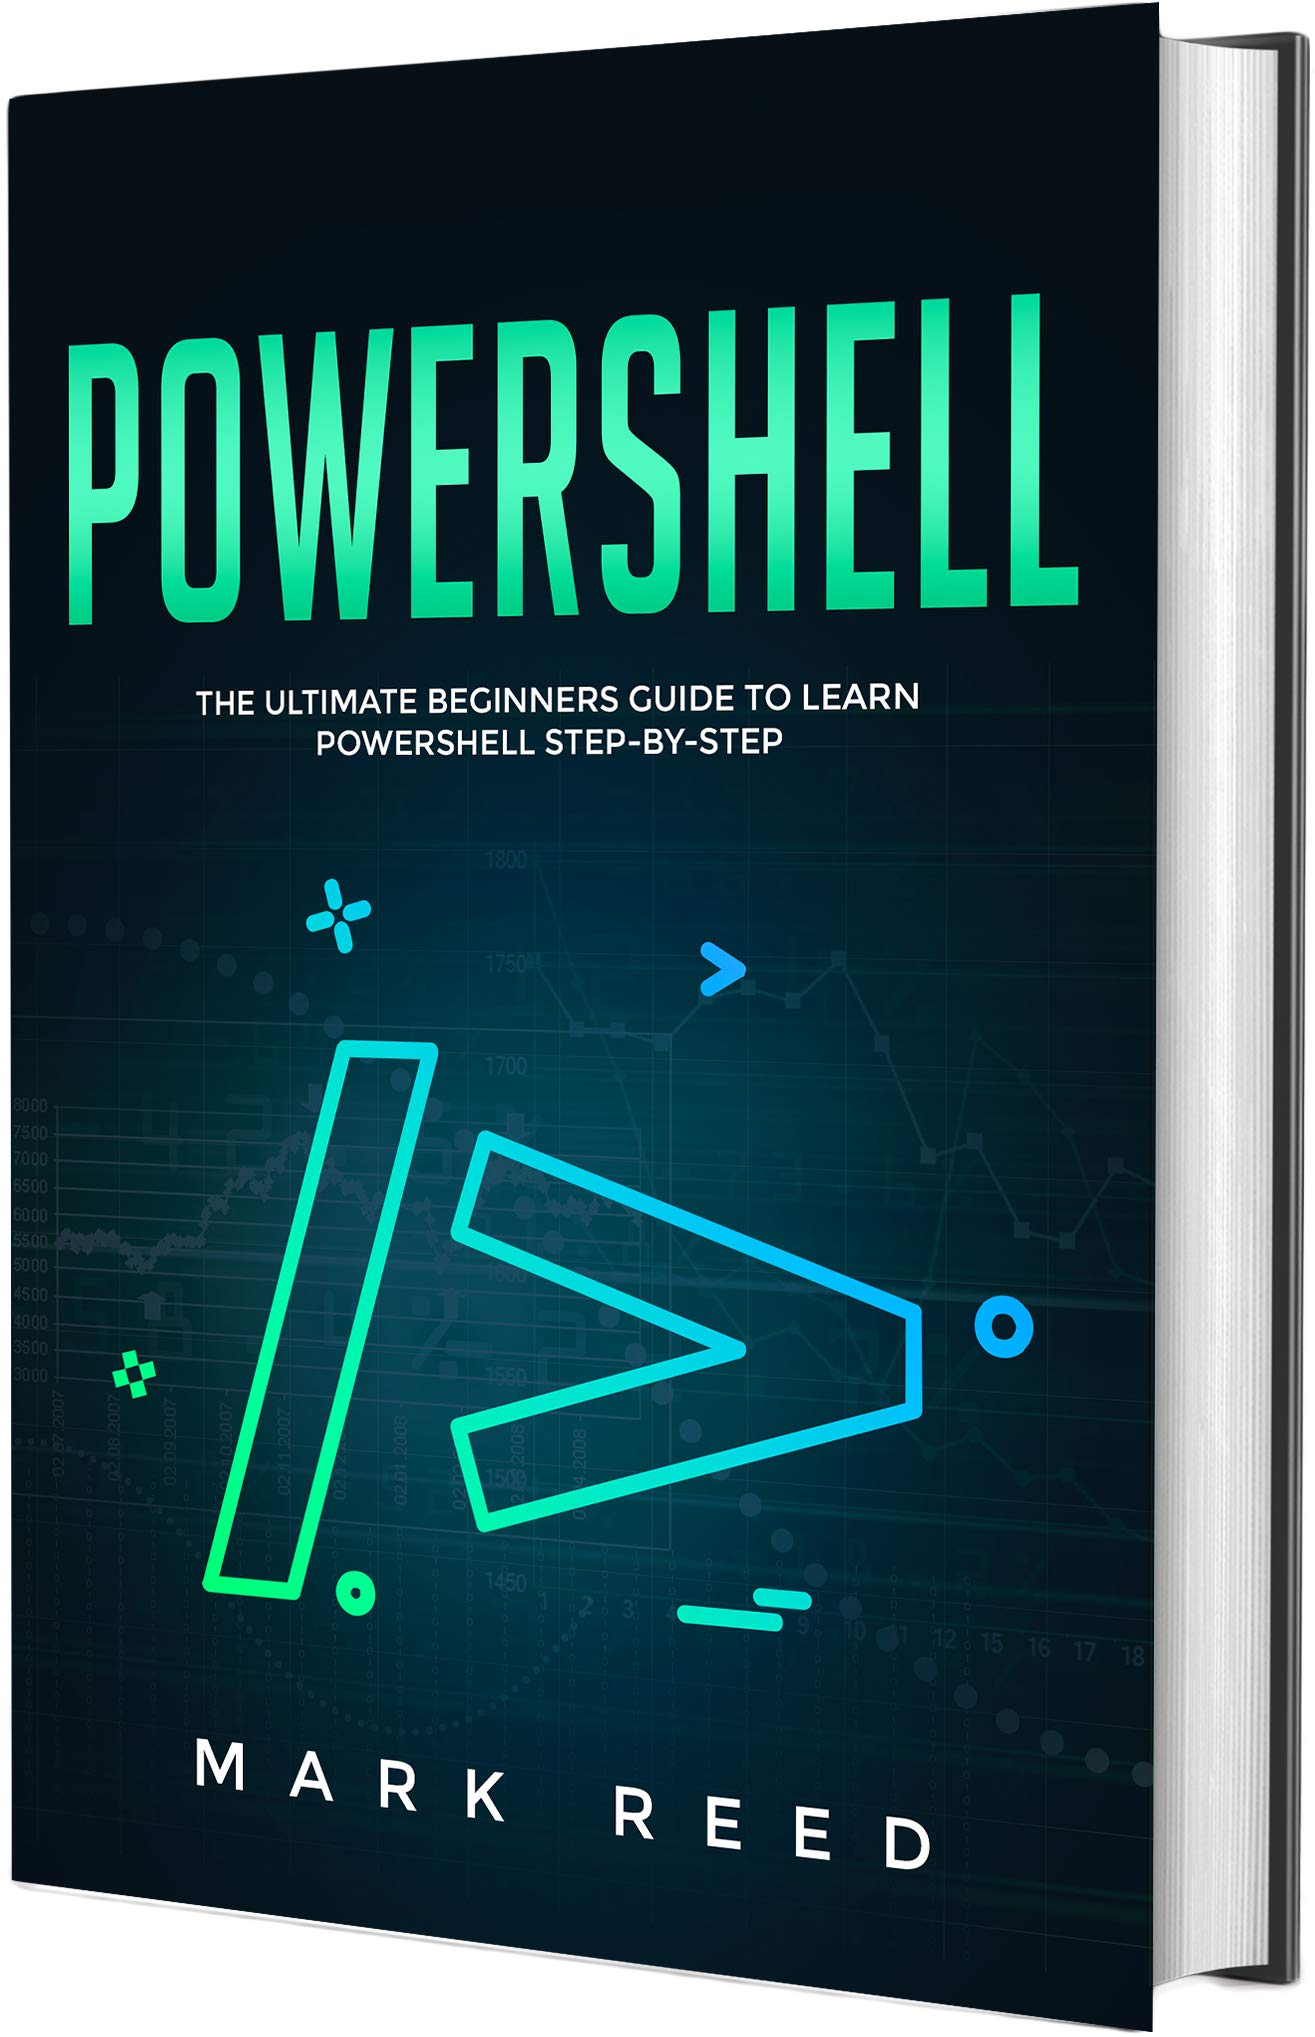 Image OfPowerShell: The Ultimate Beginners Guide To Learn PowerShell Step-by-Step